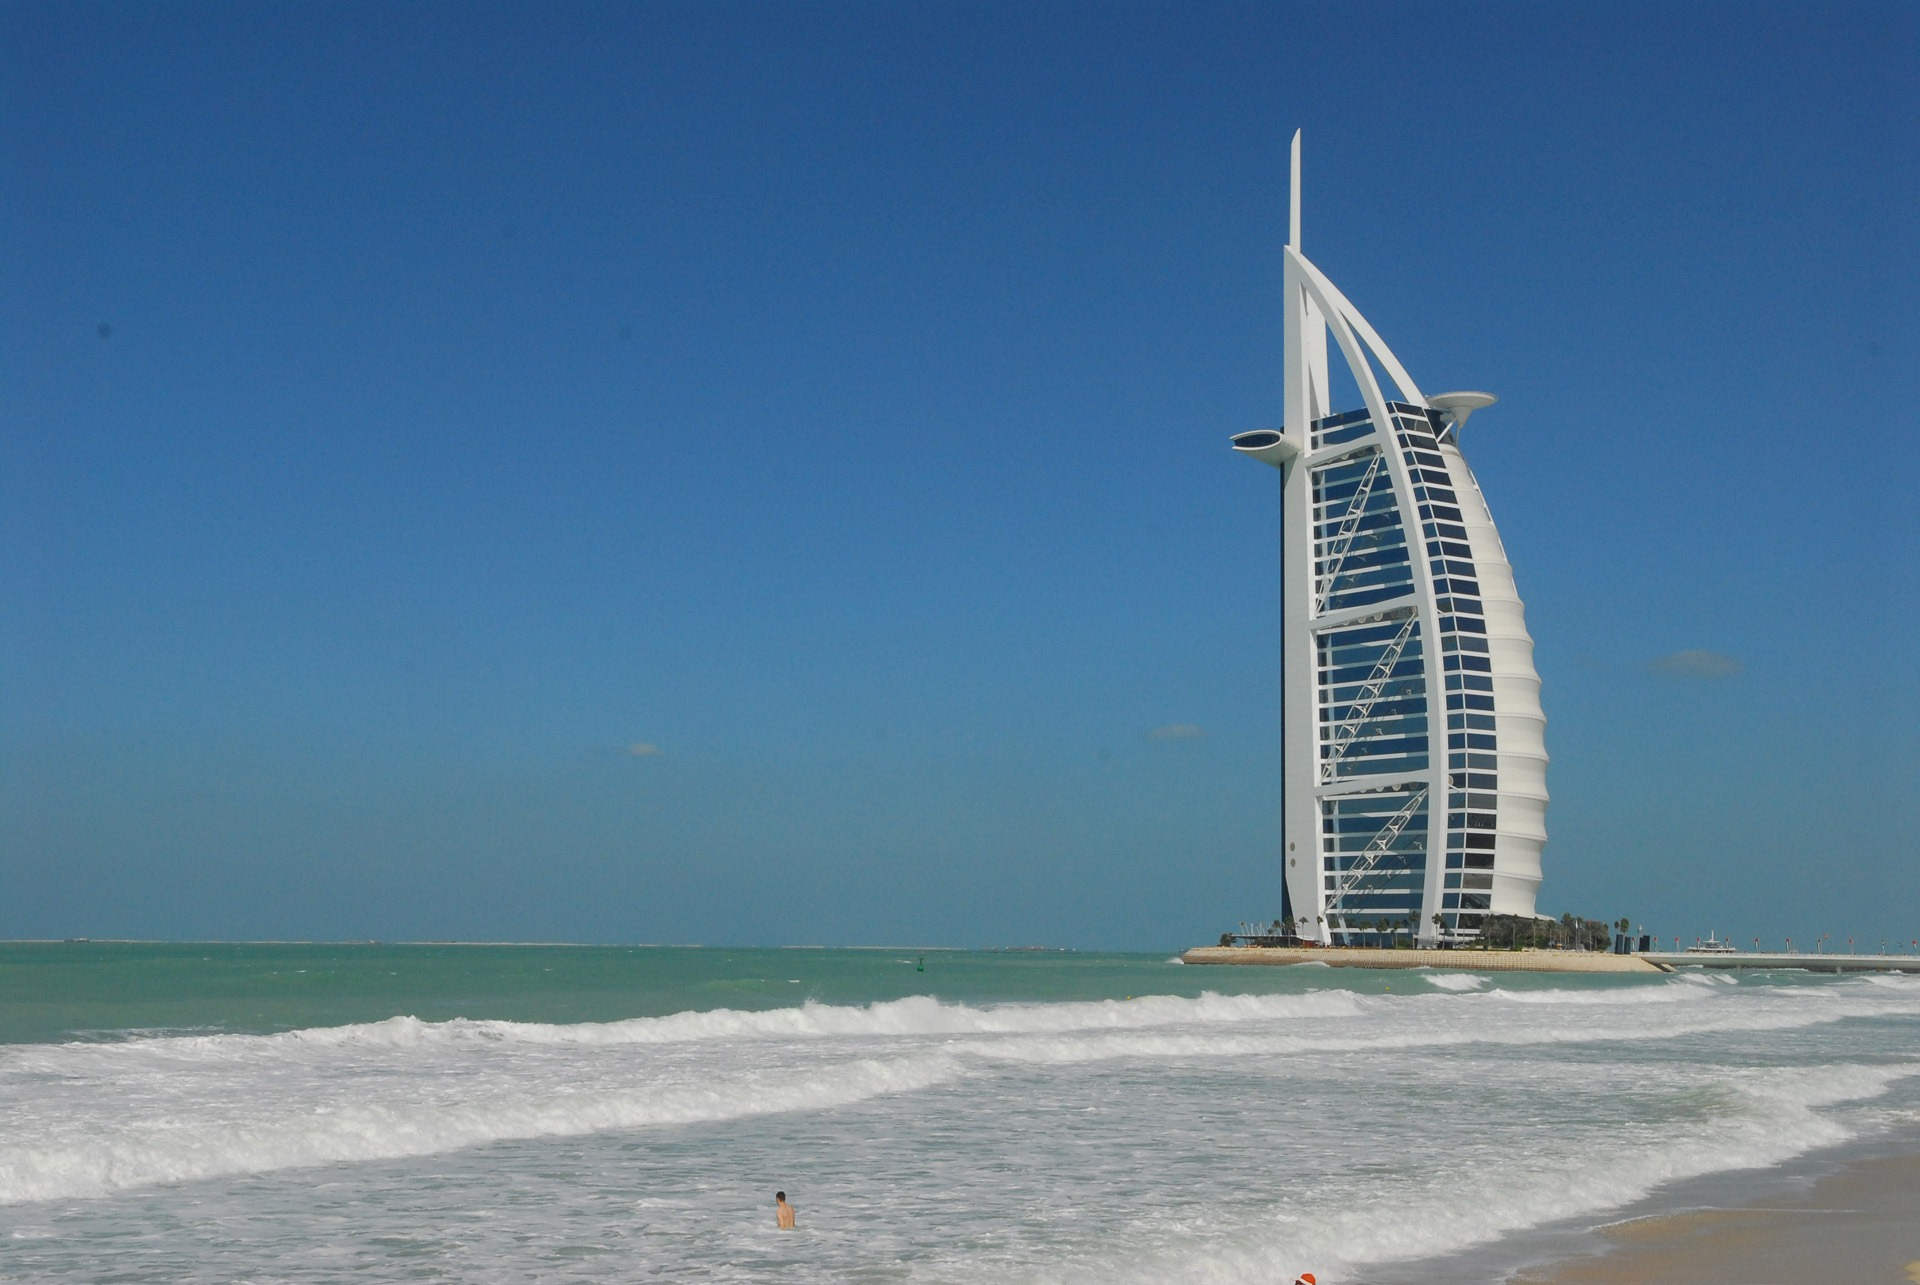 Image displaying the impressive architecture in the UAE